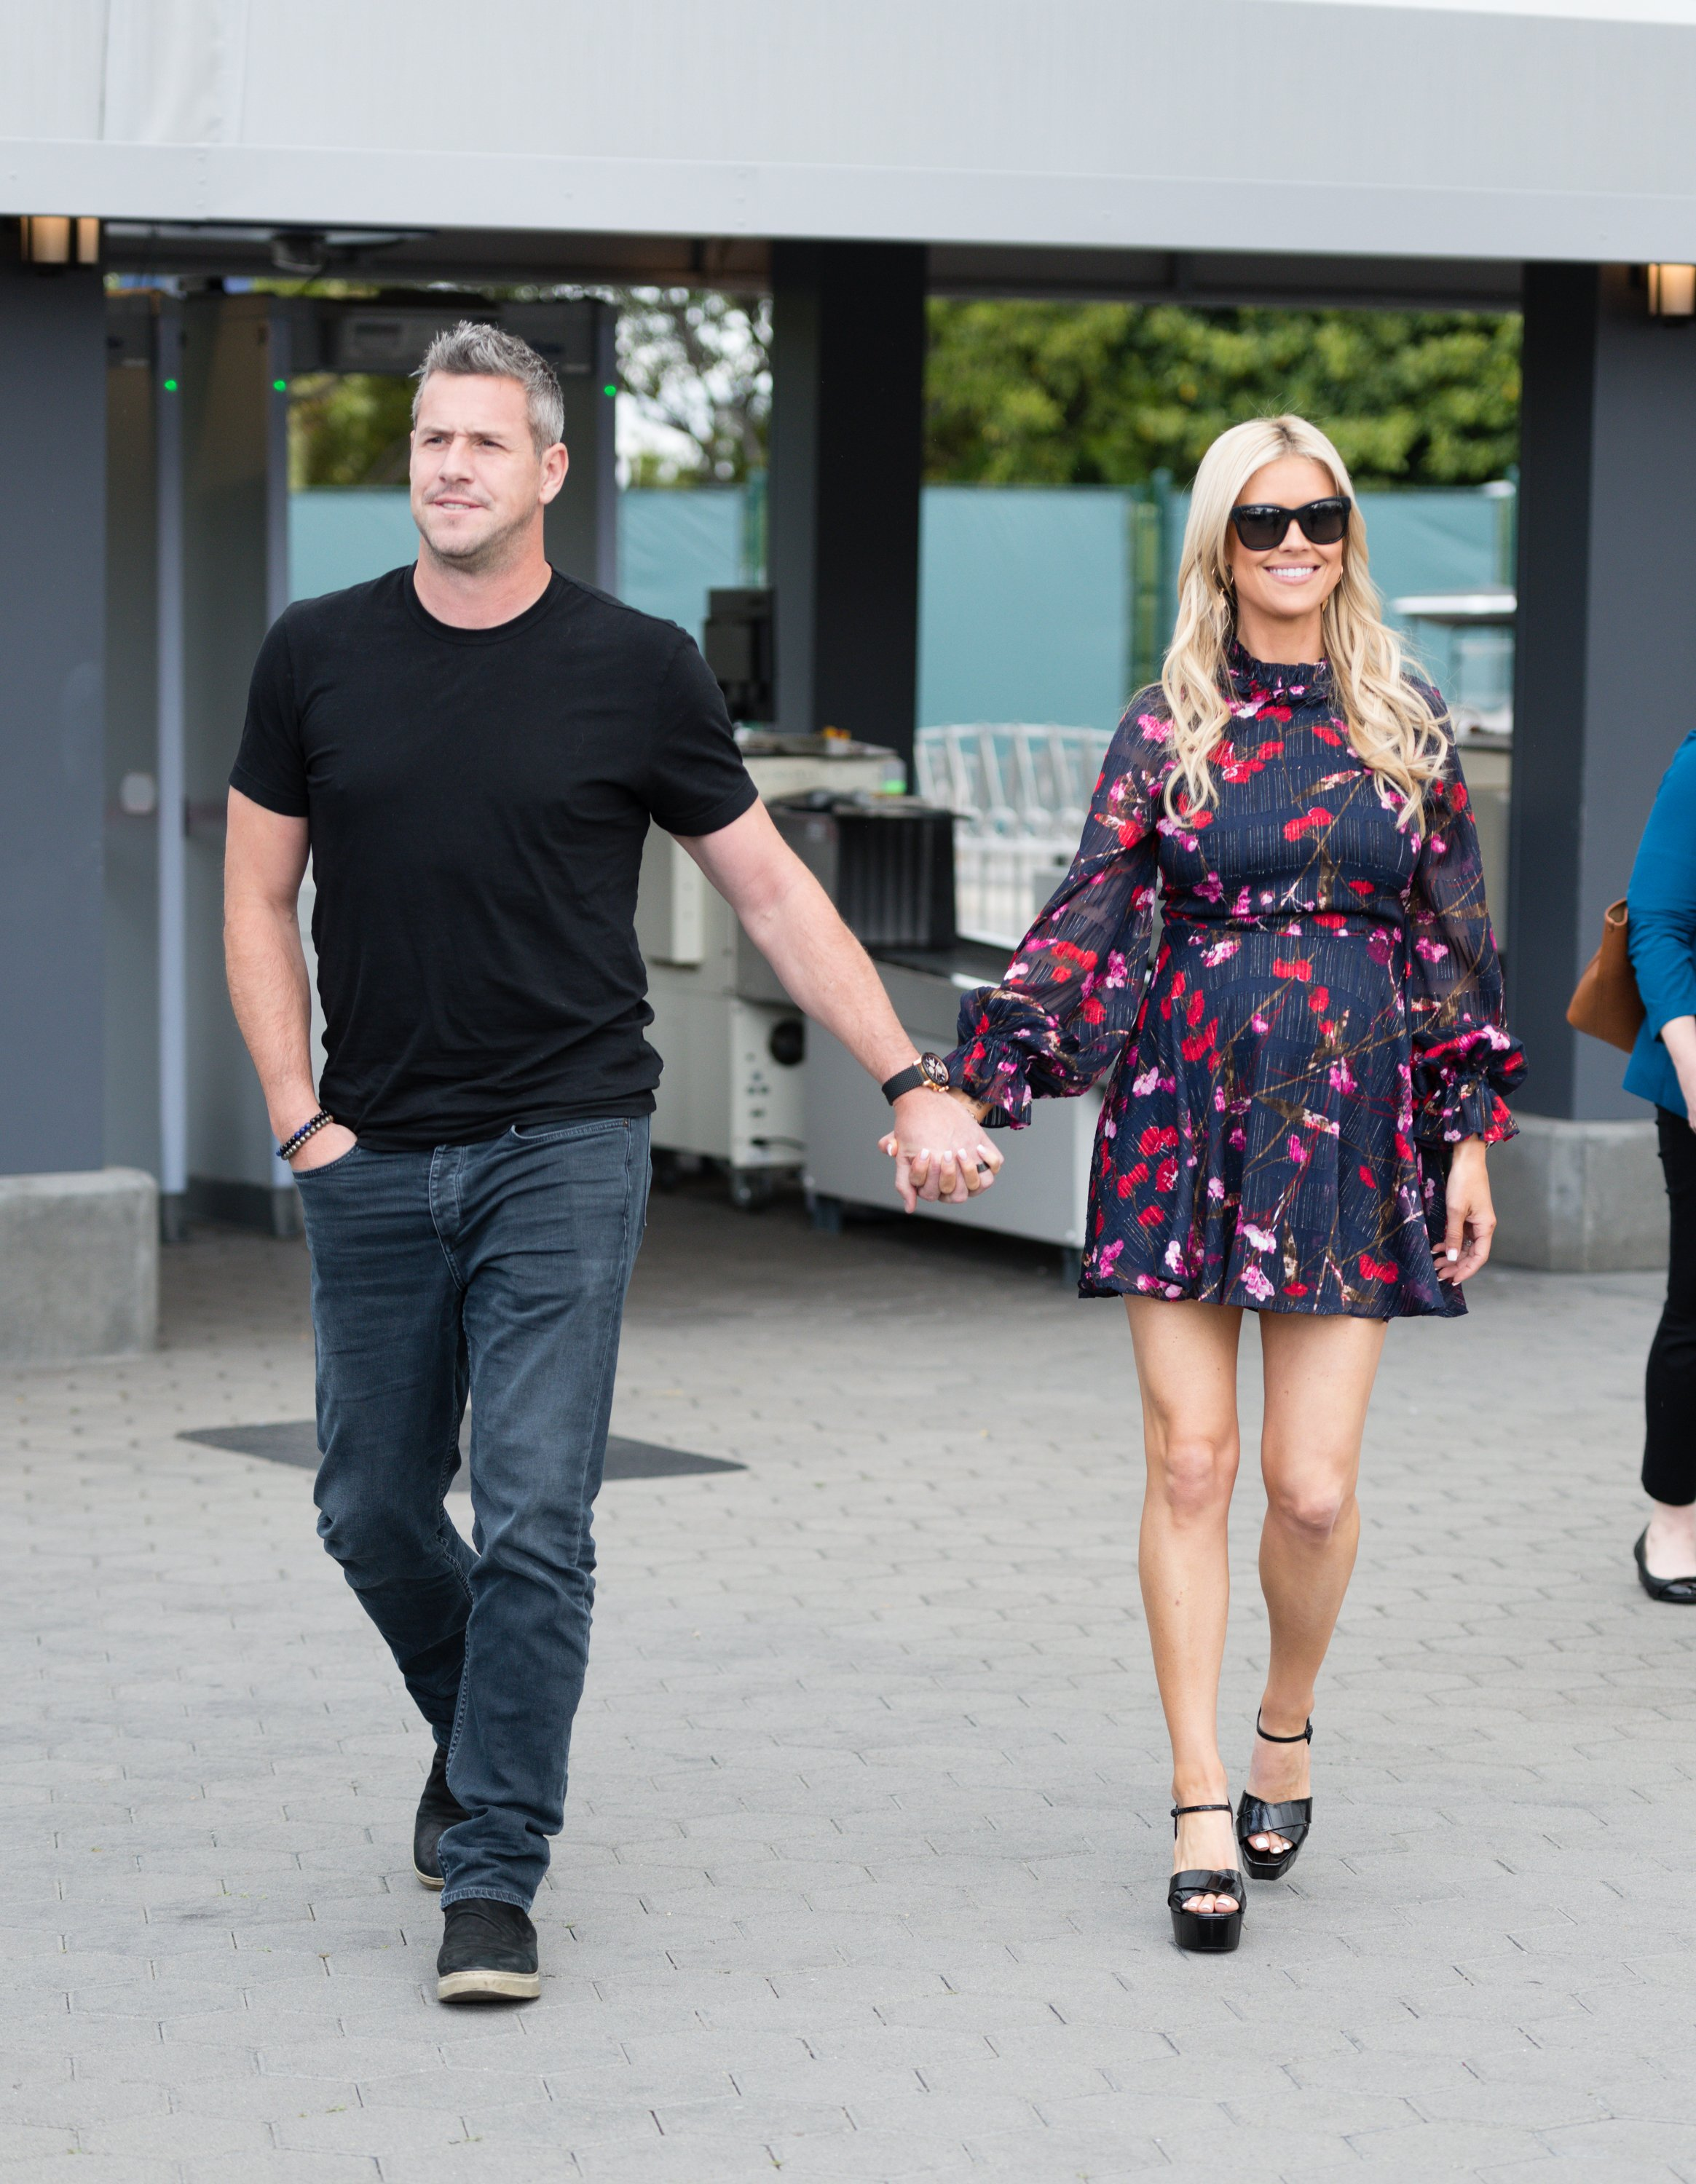 Ant Anstead and his wife, Christina Anstead in happier times, hand-in-hand and smiling in Hollywood on May 29, 2019. | Photo: Getty Images.